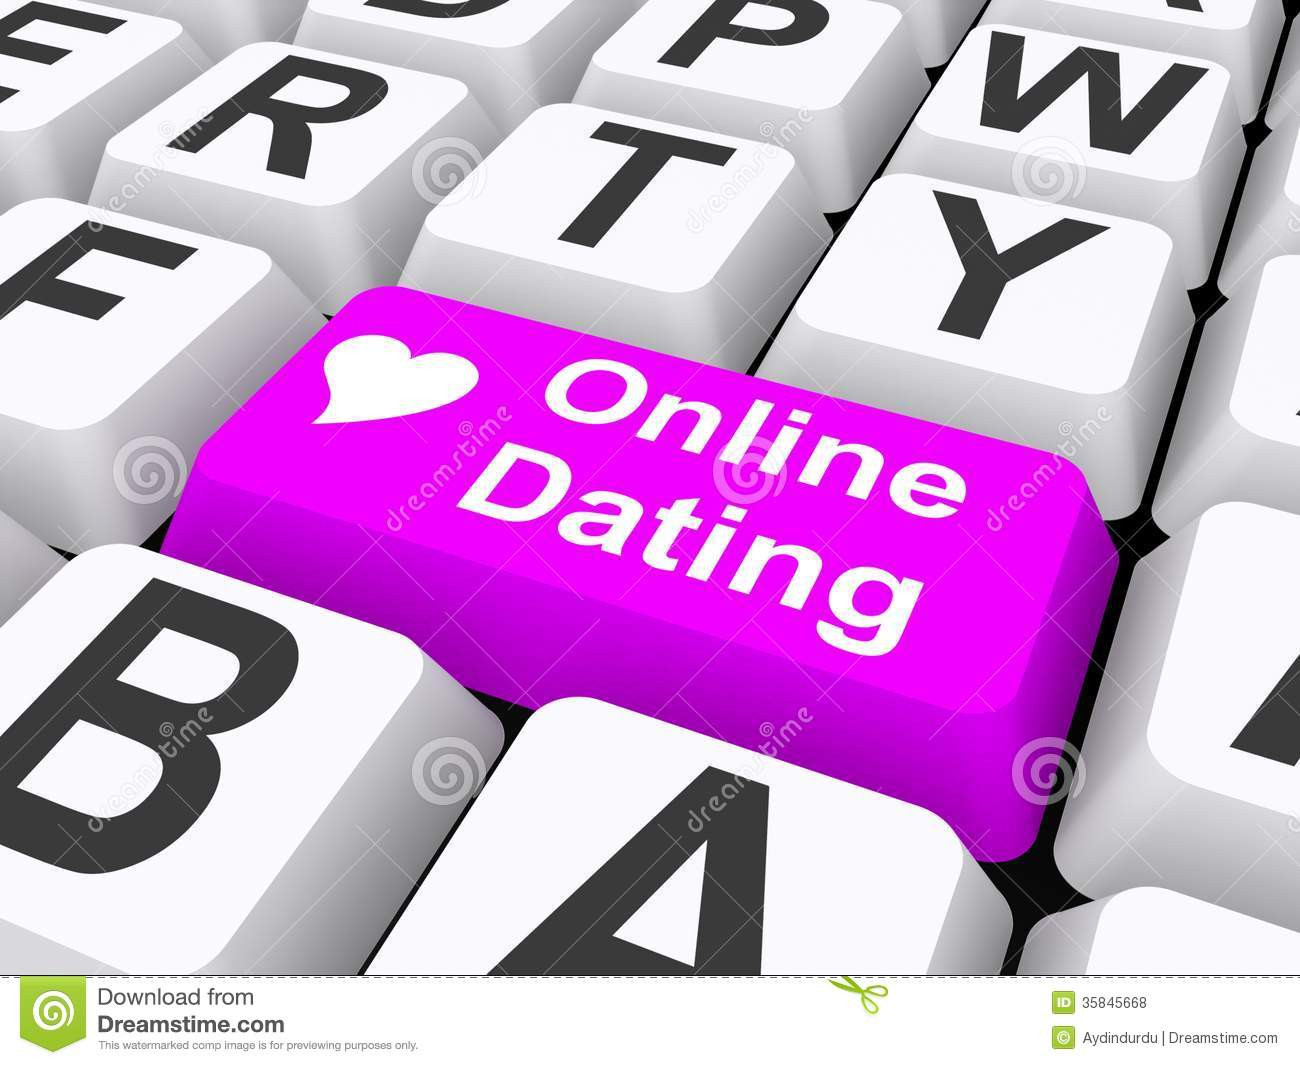 kurtistown online dating Meet kurtistown singles online & chat in the forums dhu is a 100% free dating site to find personals & casual encounters in kurtistown.